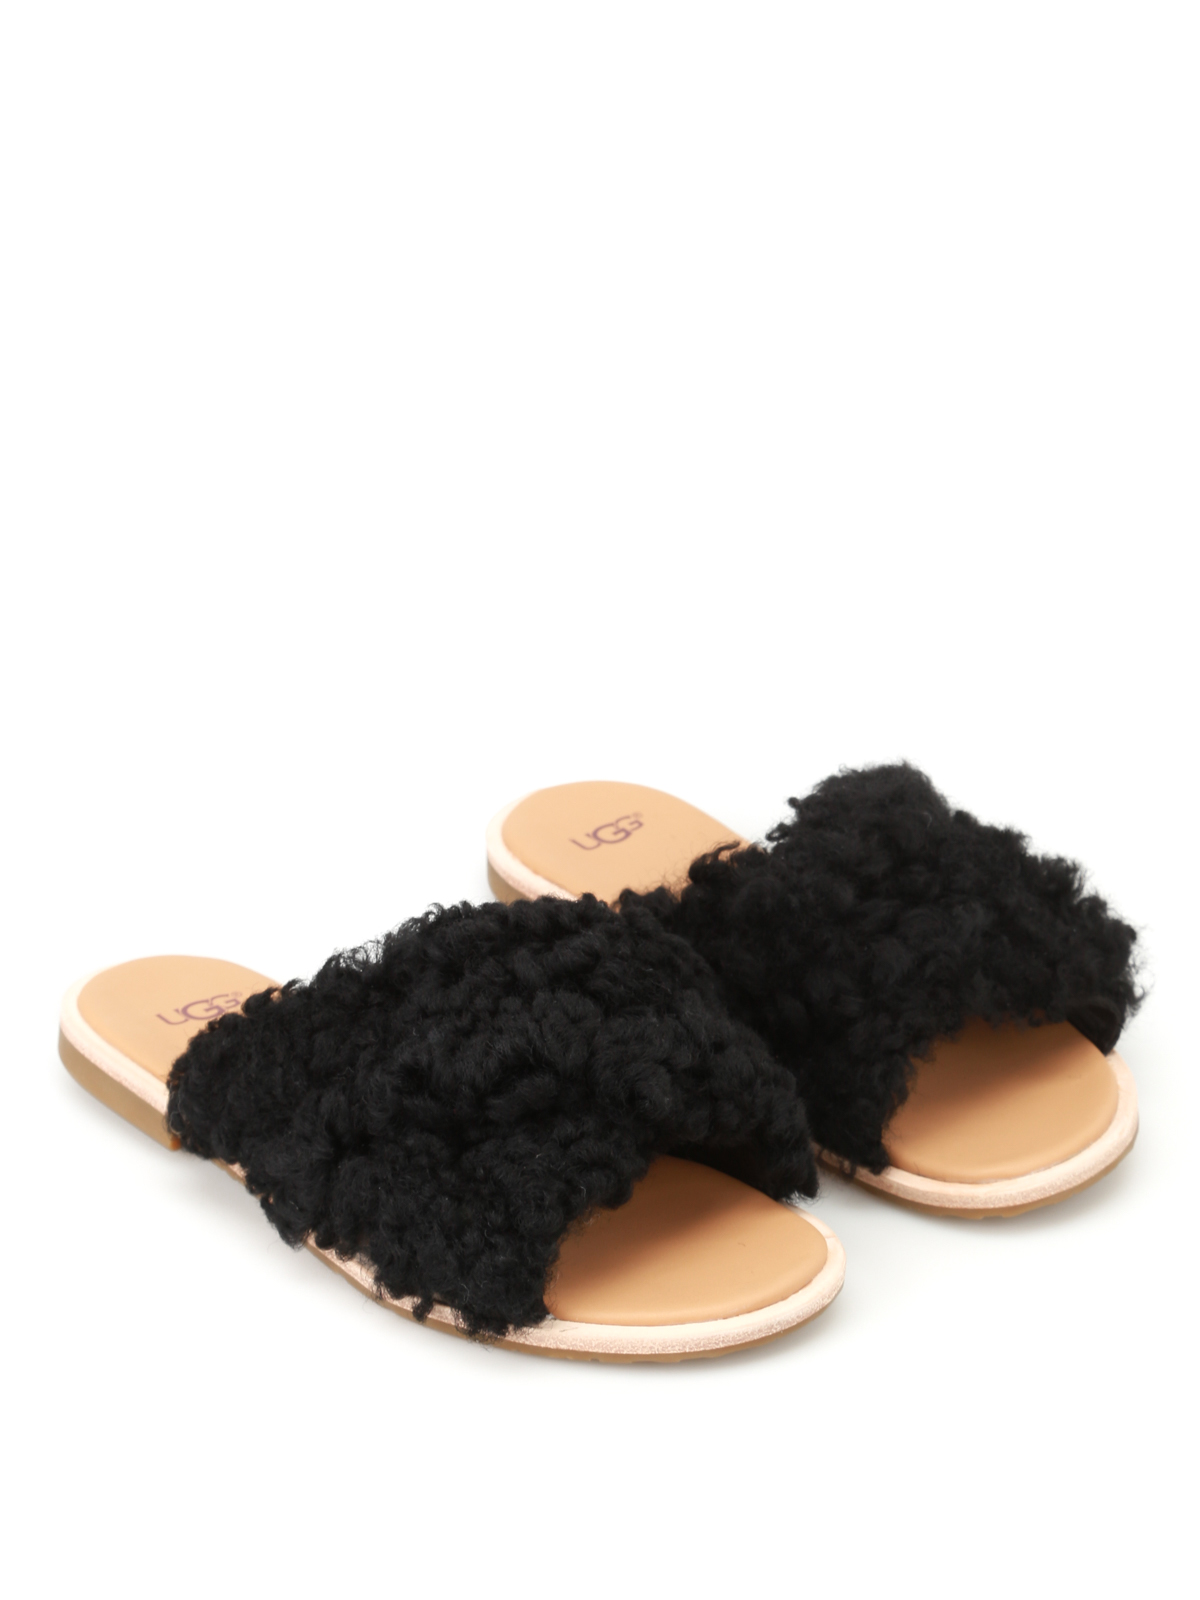 f9873557858 Ugg - Joni curly sheepskin slide sandals - sandals - W JONI 1019967 ...